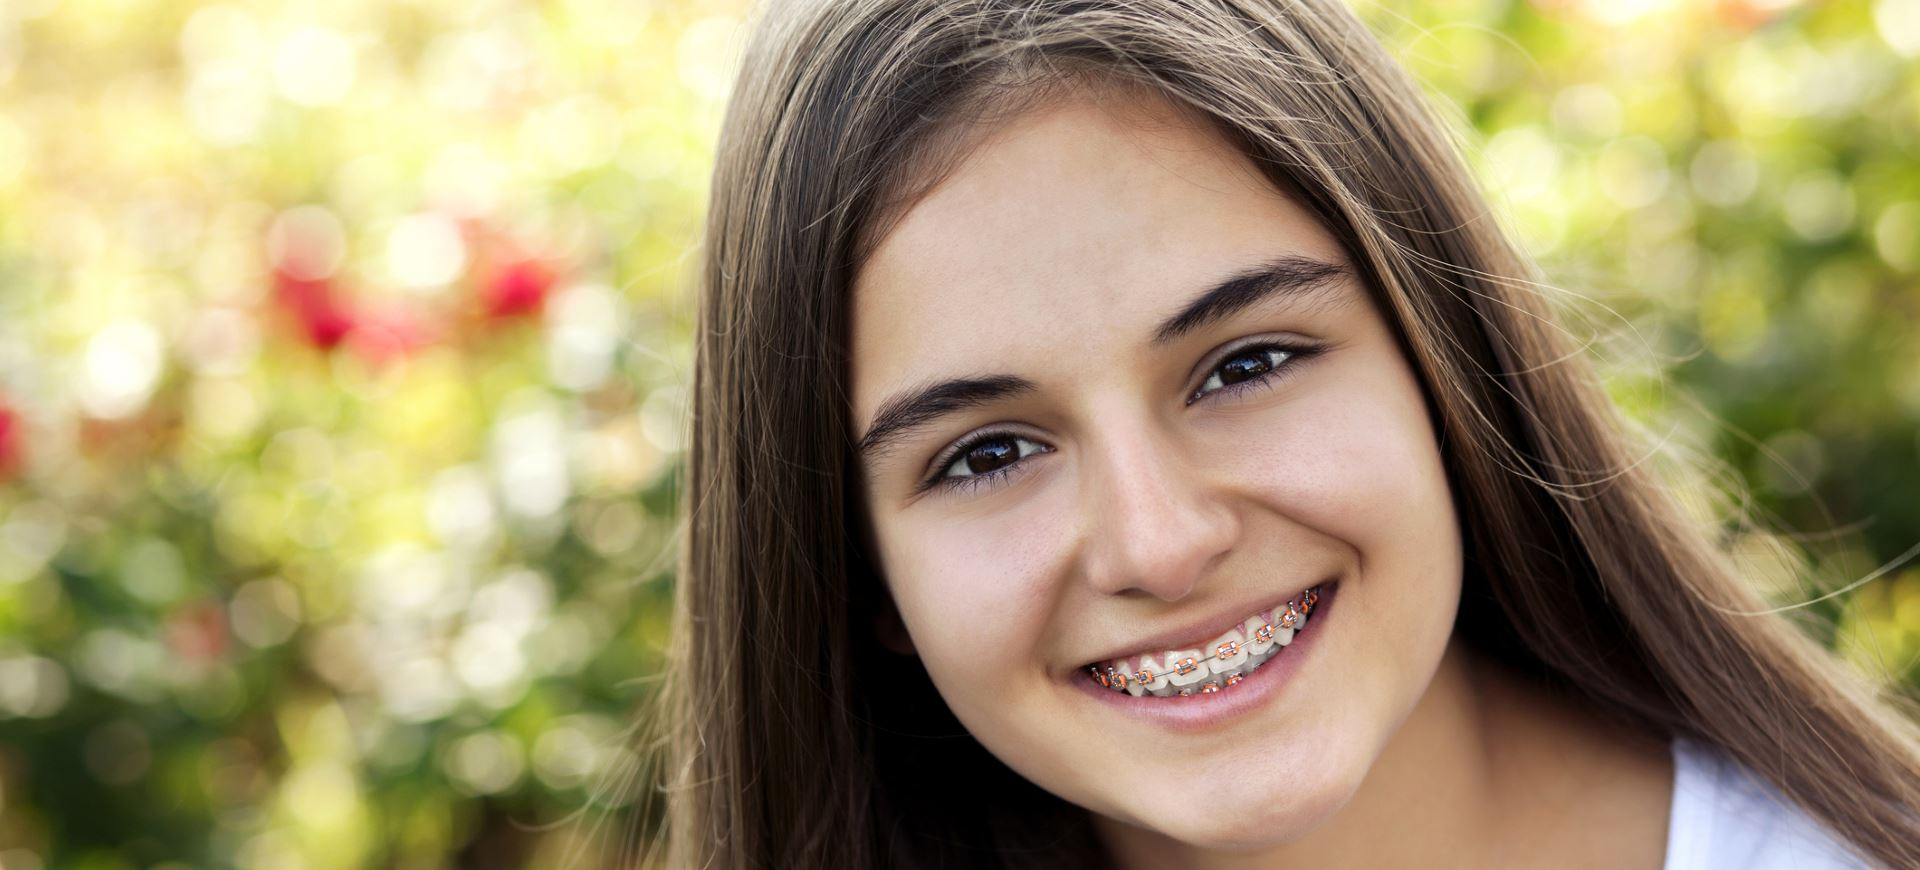 Portrait of a beautiful teenage girl with braces